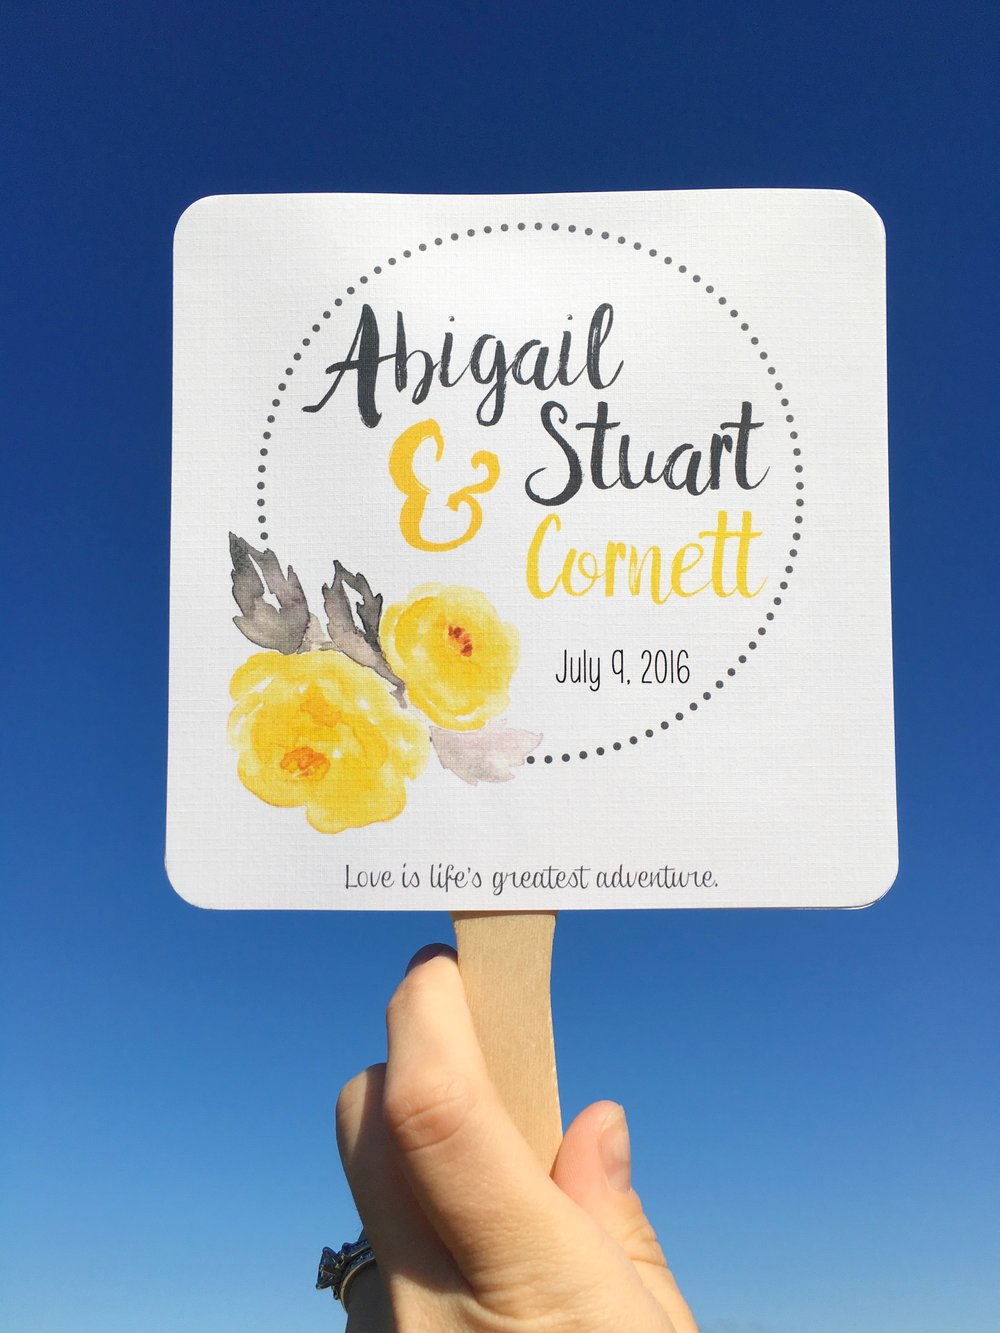 Central PA, York PA, JesSmith Designs, custom, wedding, invitations, bridal, announcements, save the date, baby, hanover, calligraphy, baltimore, wedding invitations, lancaster, gettysburg-06-29 08.58.58.jpg